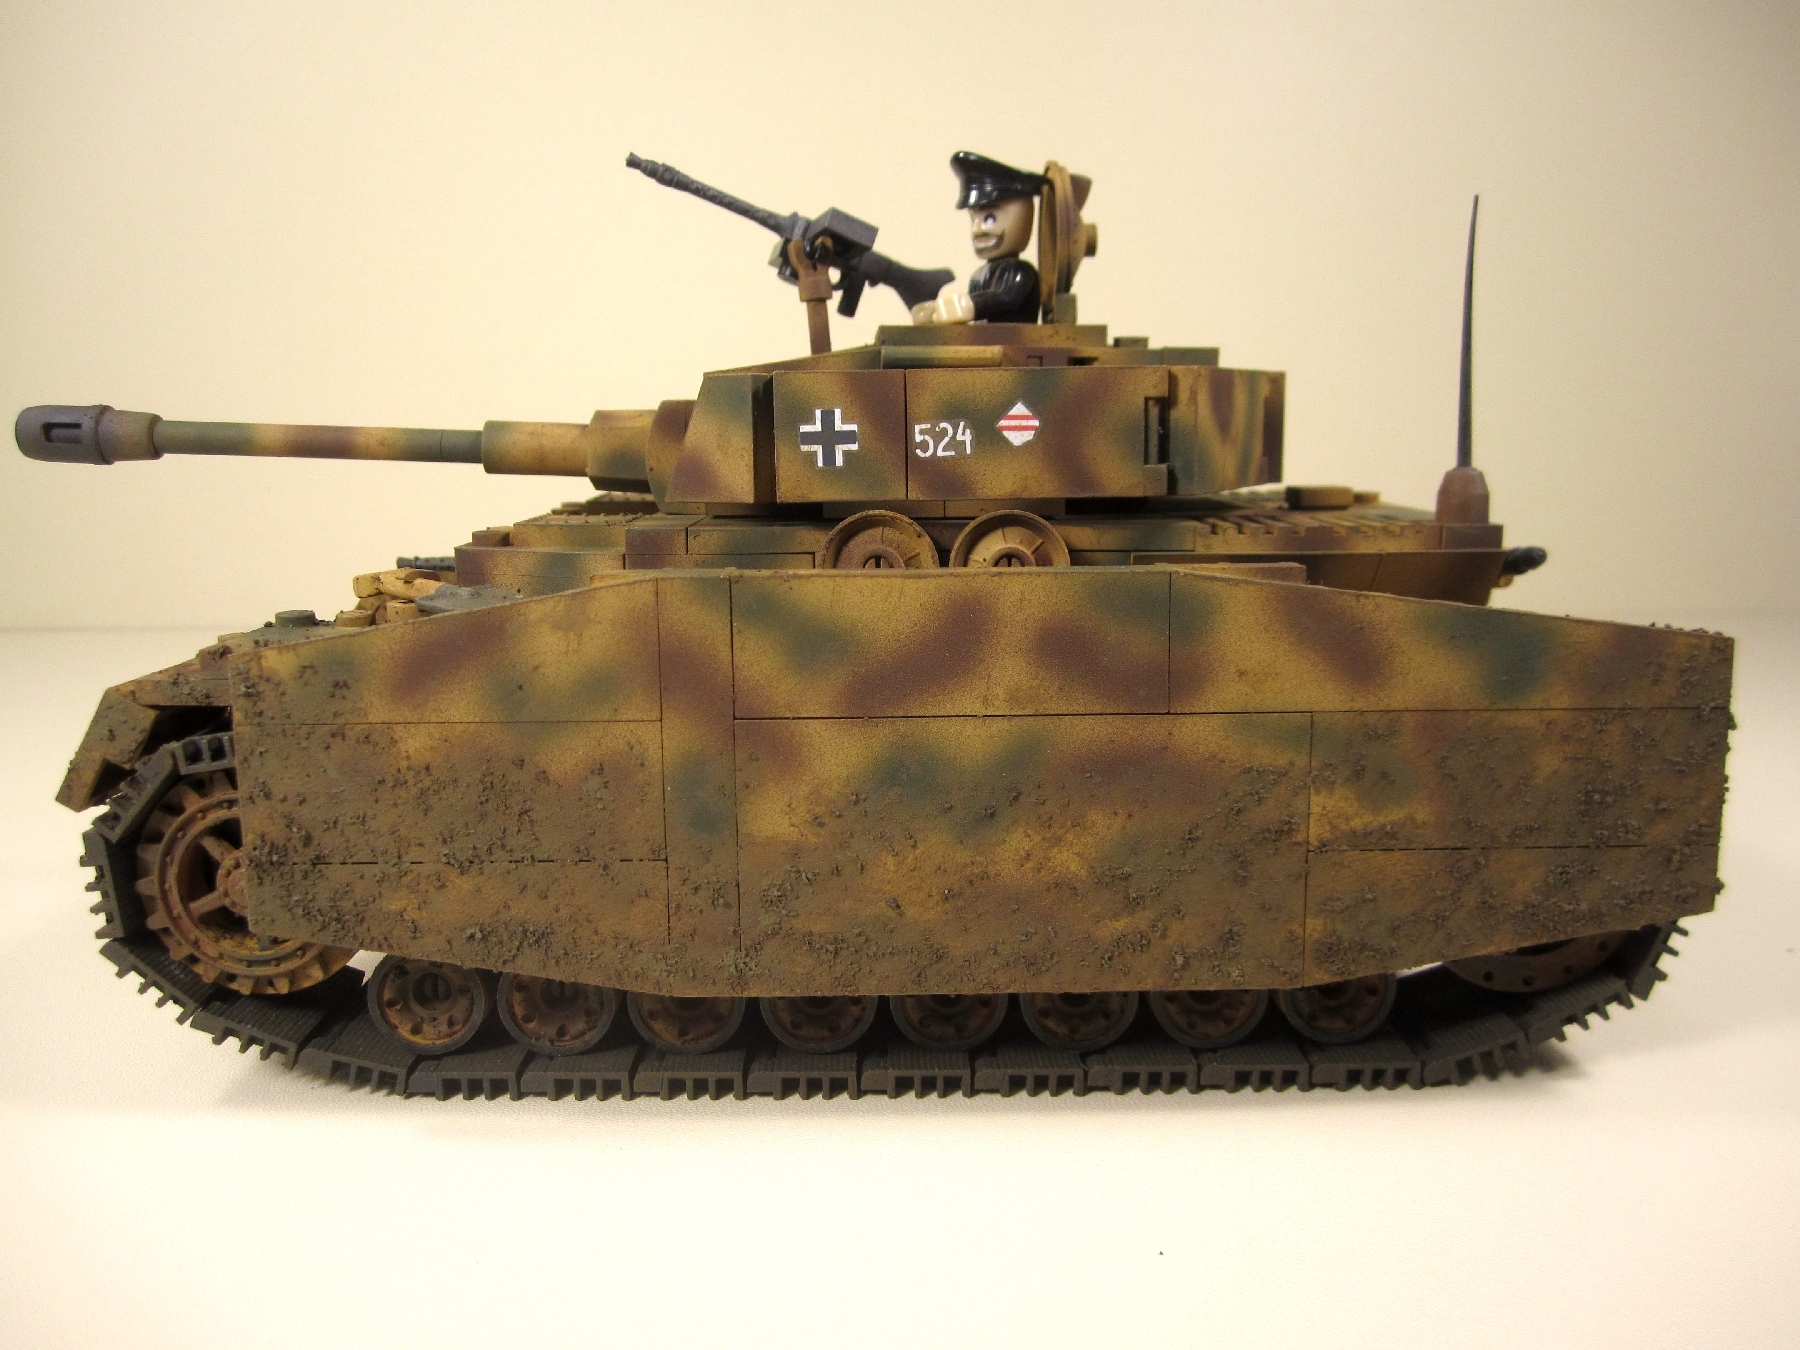 Cobi_2508_PzKpfw_IV_G_www.super-bricks.de_camouflage_paint_Small_Army_Tarnung_1